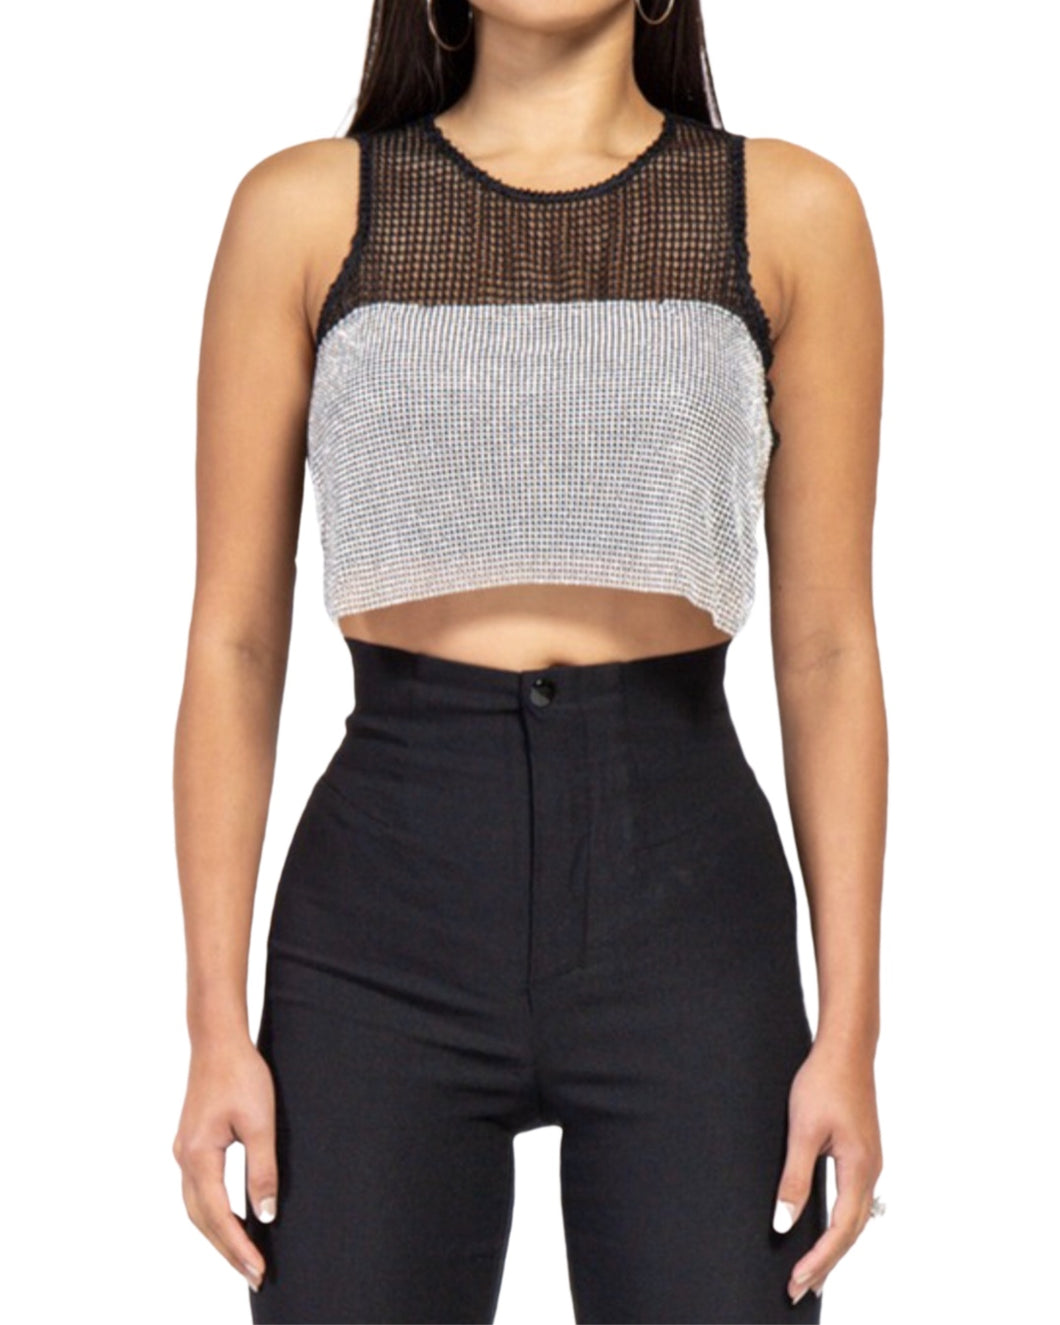 SHYNE CROP TOP